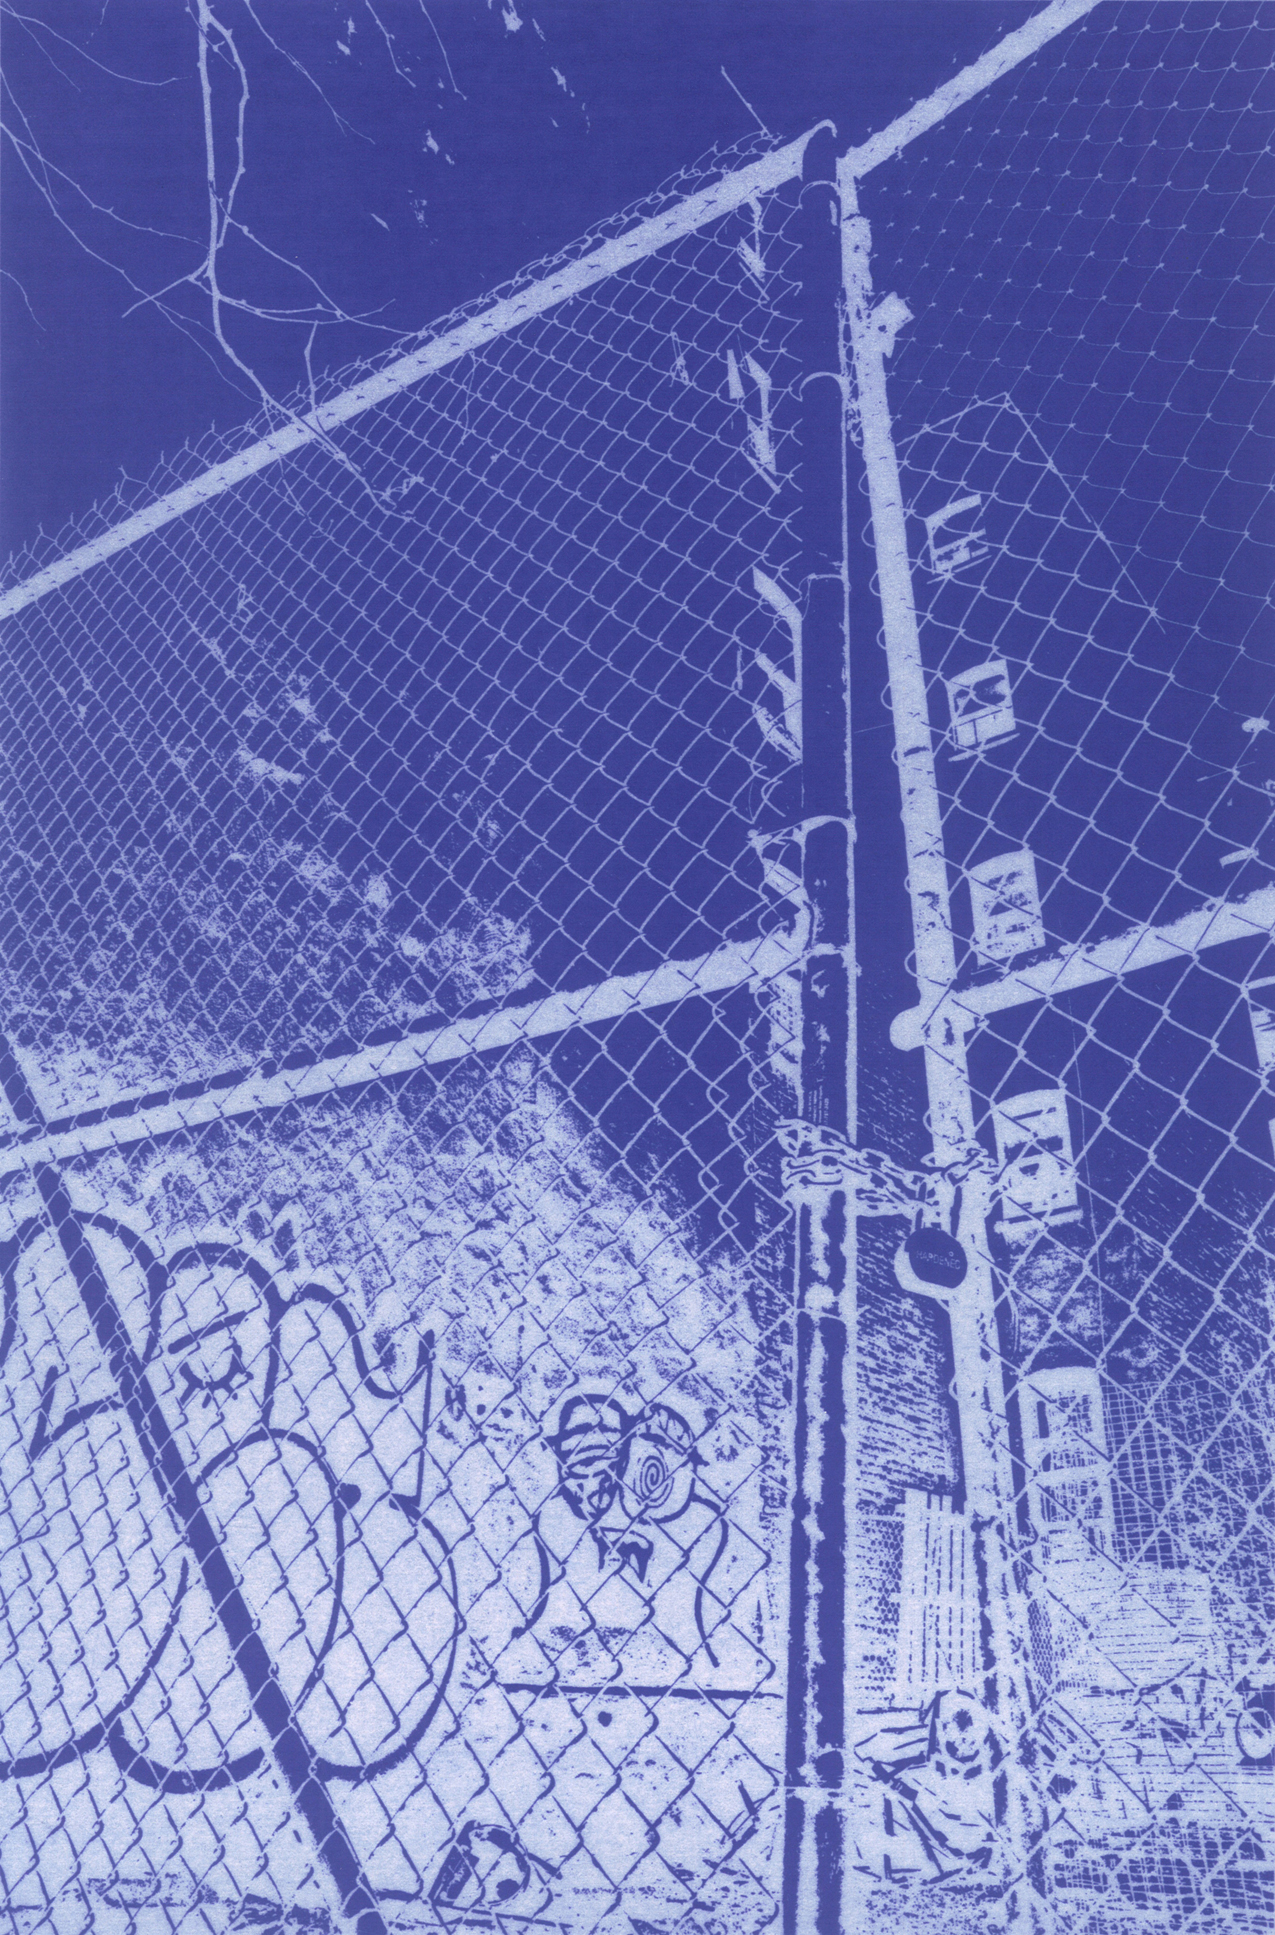 Tony Stamolis, 9 East 3rd Street, 2013 cyanotype 43 x 28 cm - 17 x 11 inches